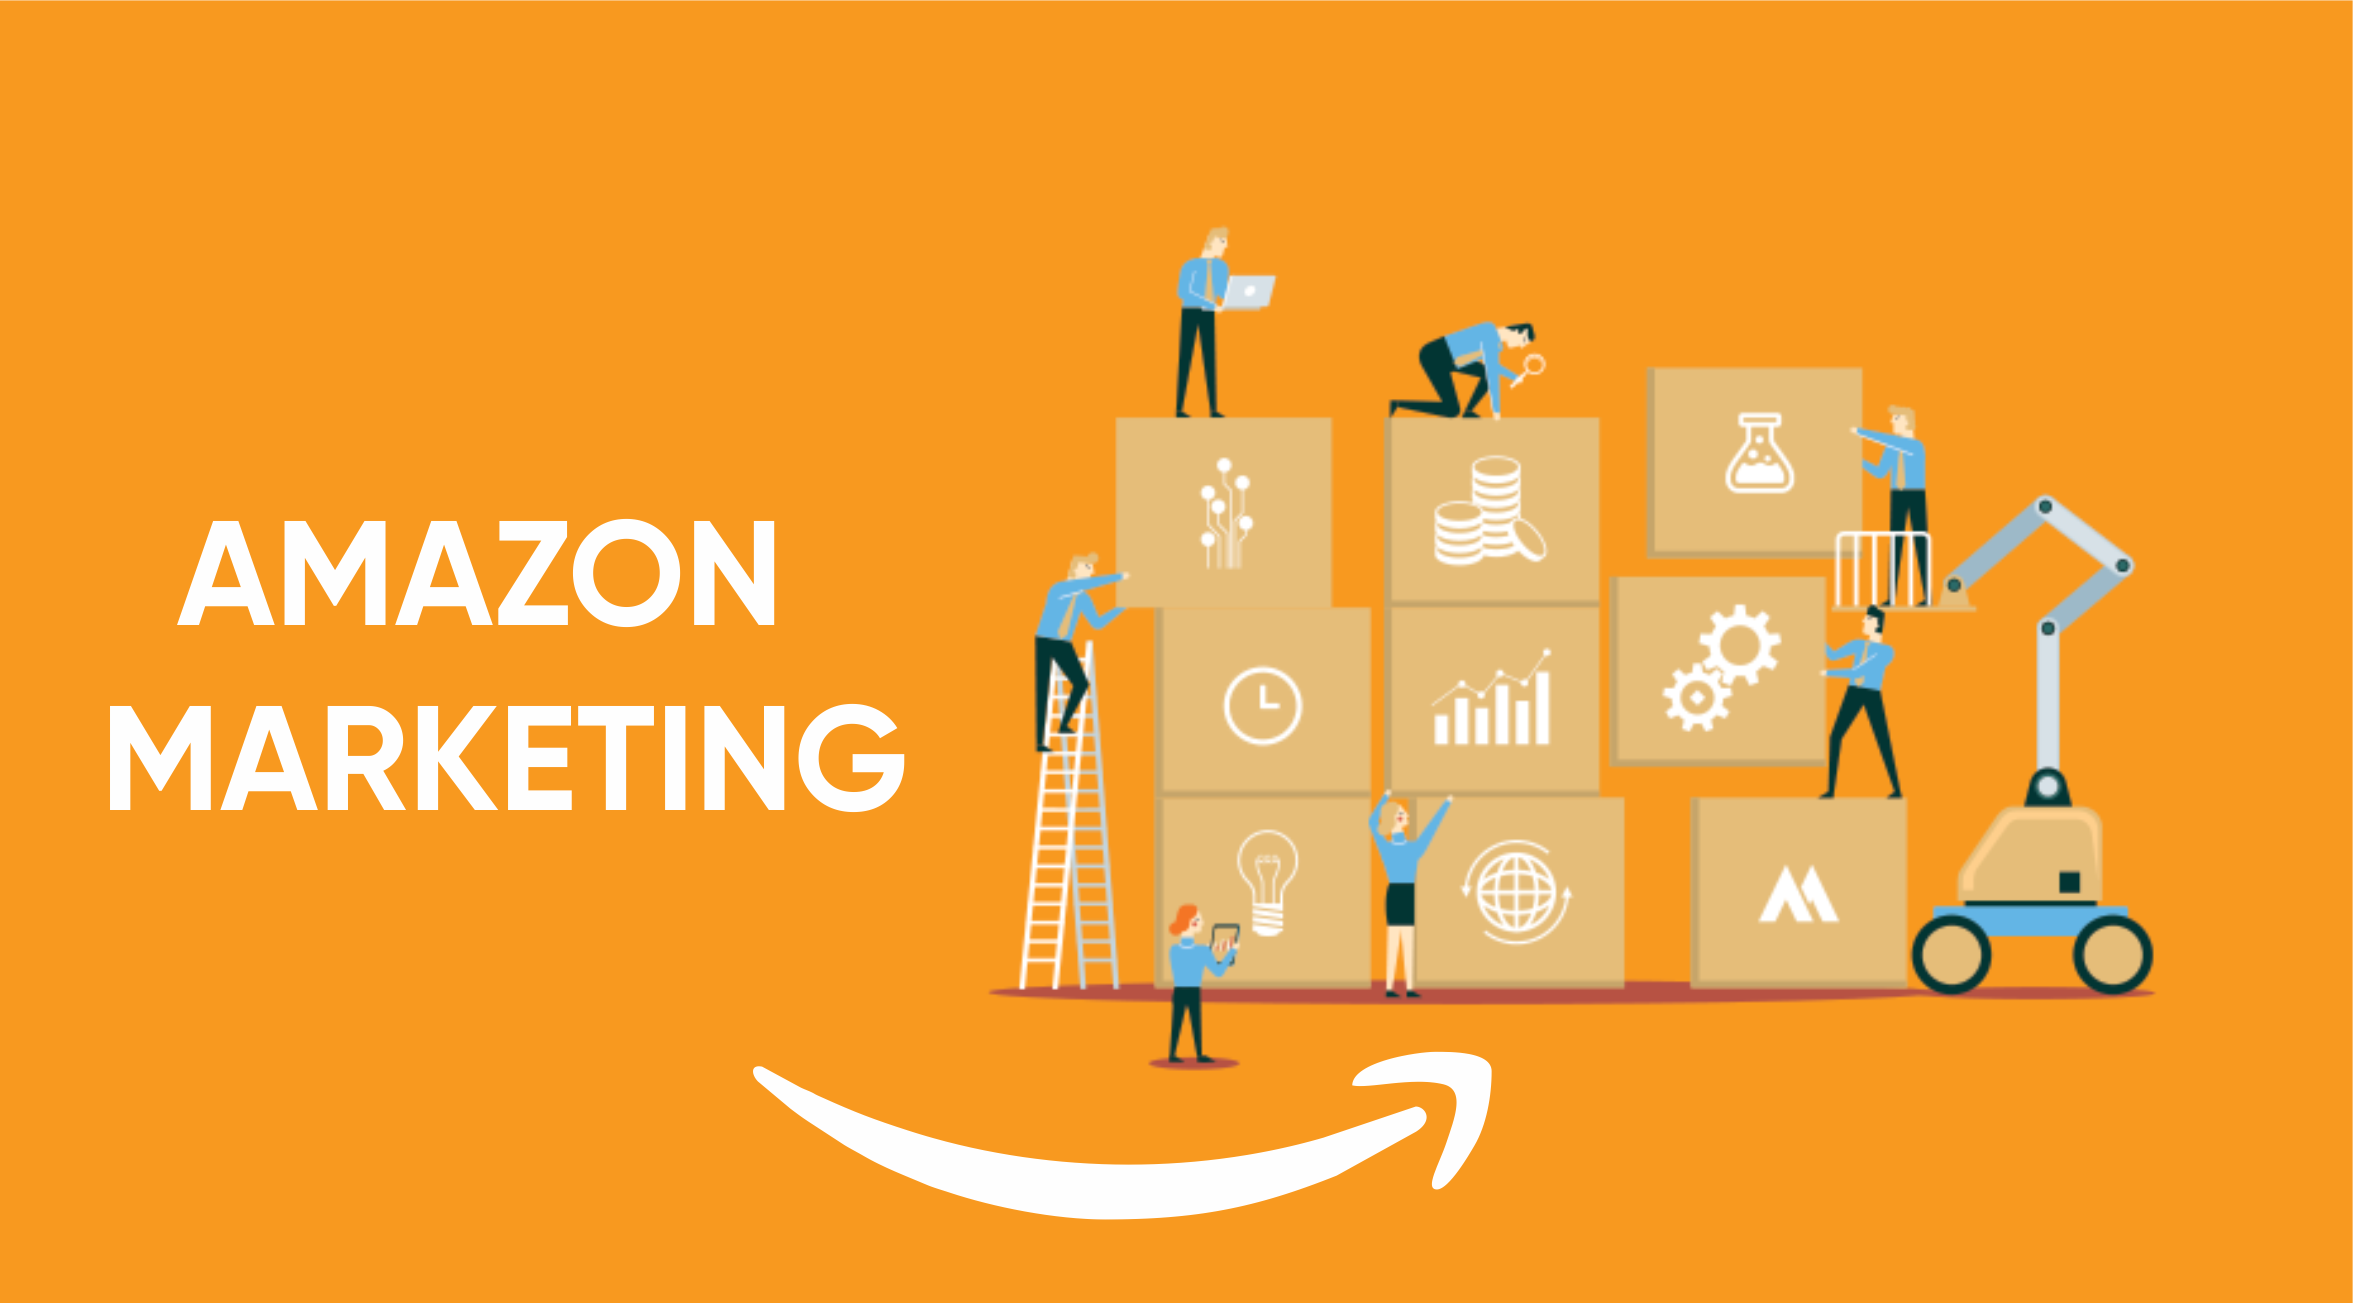 Amazon Marketing Tips That Will Get You Leads And Sales